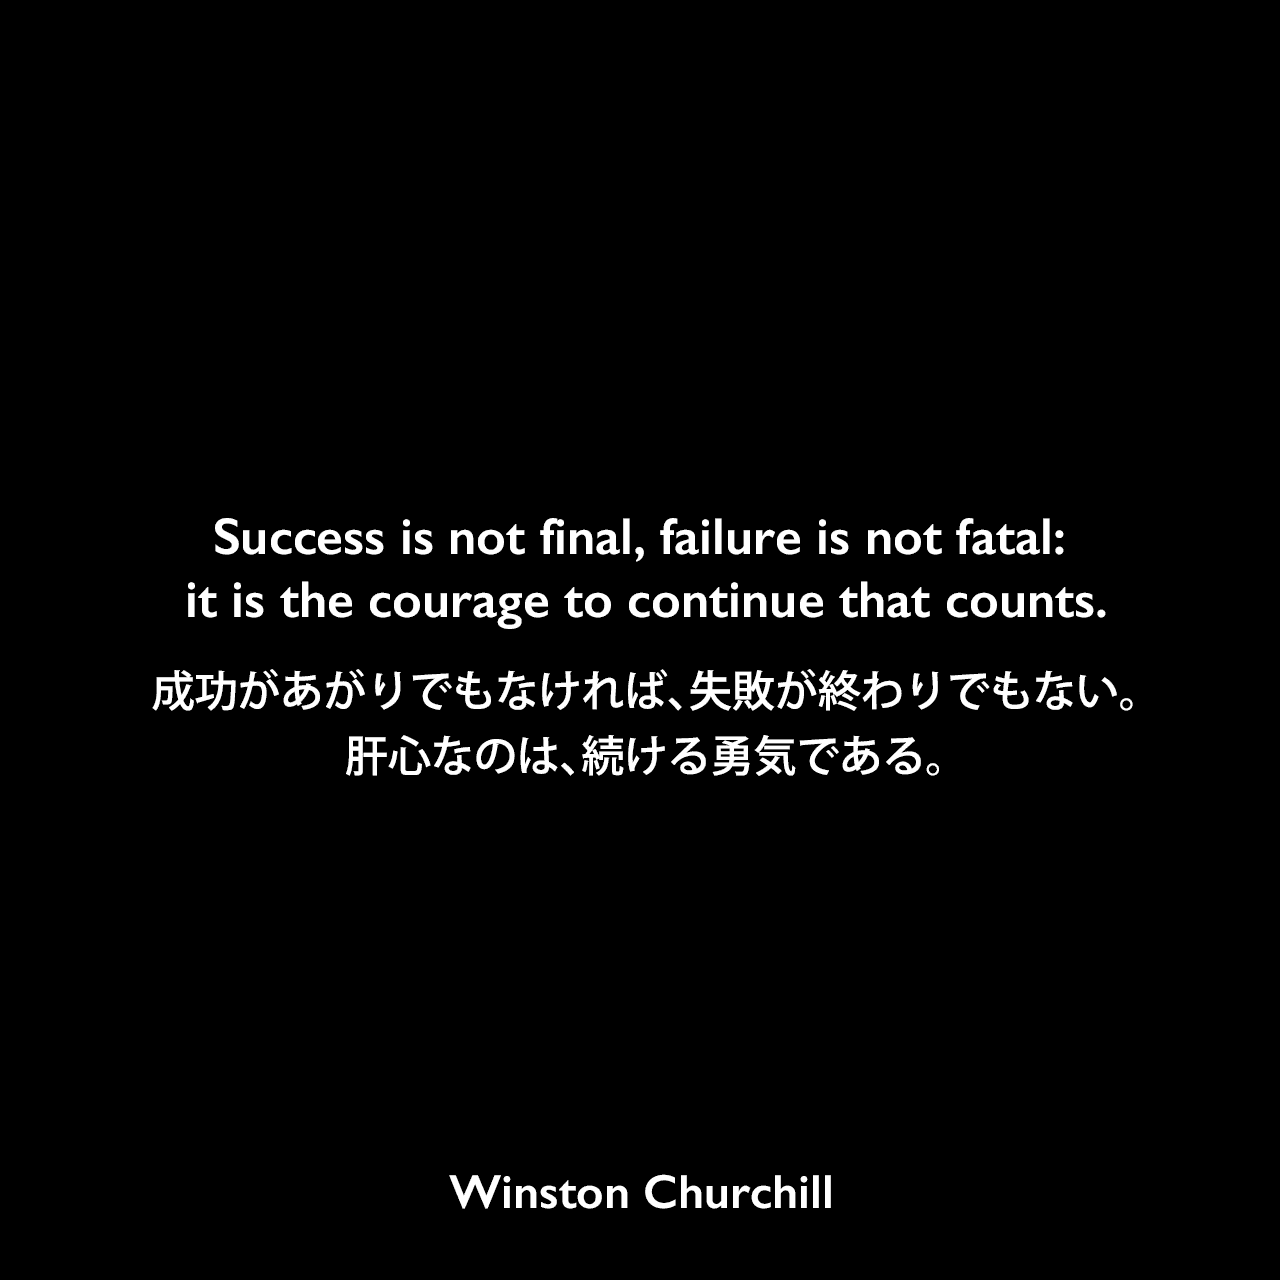 Success is not final, failure is not fatal: it is the courage to continue that counts.成功があがりでもなければ、失敗が終わりでもない。肝心なのは、続ける勇気である。